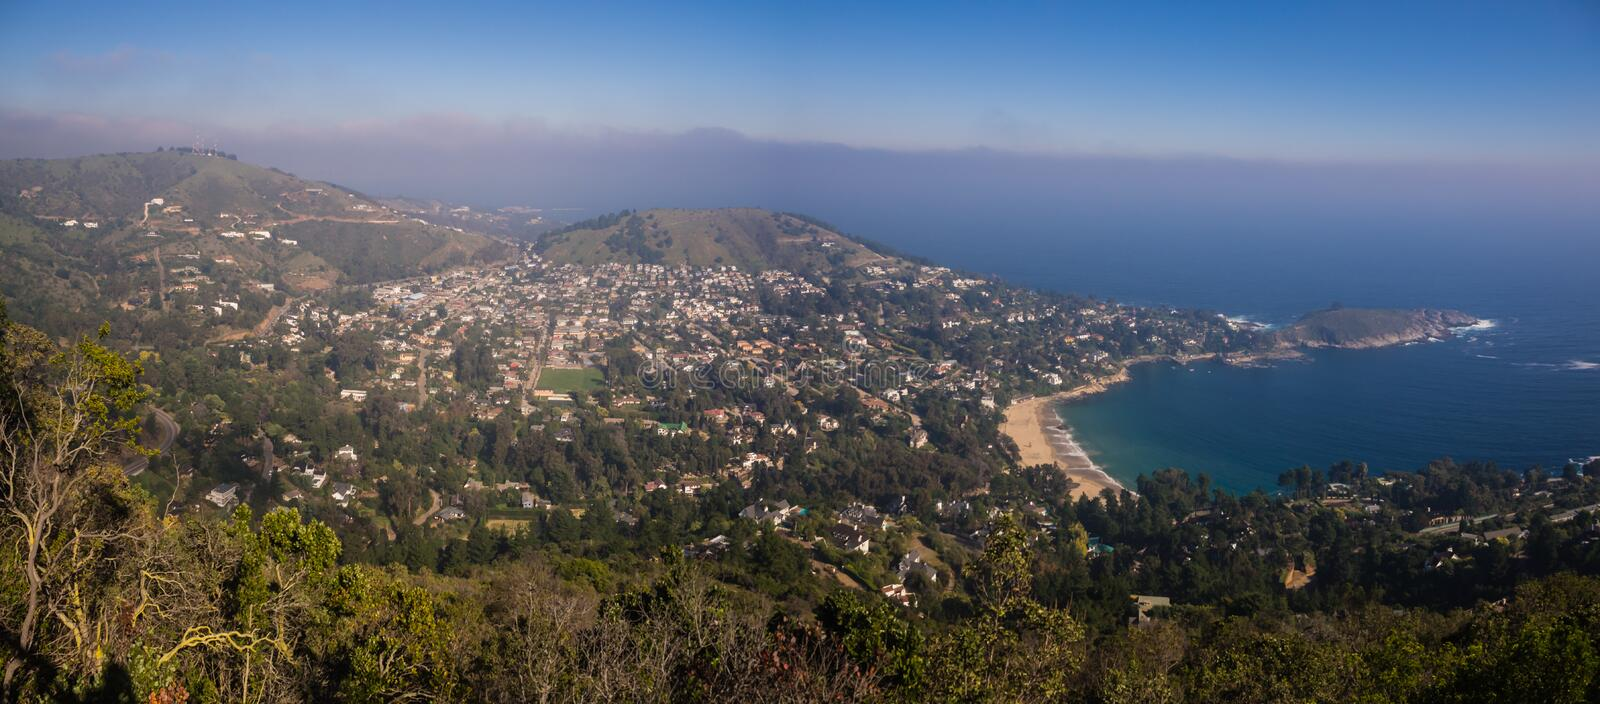 Panoramic of the coast town of Zapallar in Chile. royalty free stock images